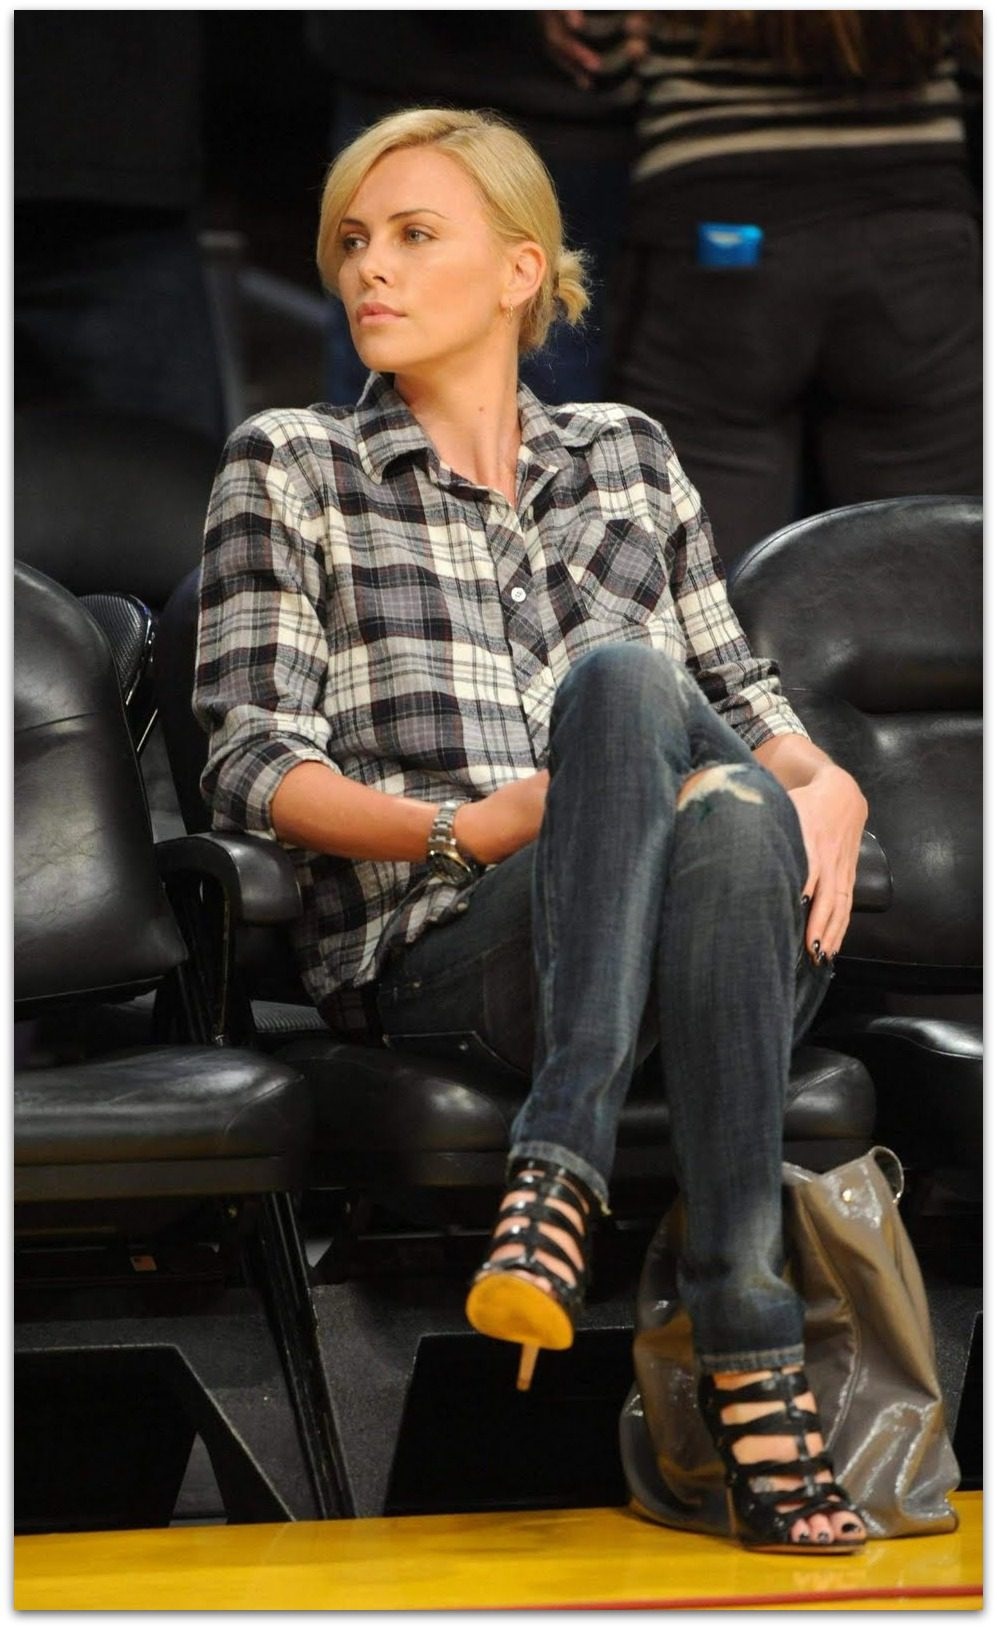 Charlize Theron Wears Jeans Well Vicki Archer